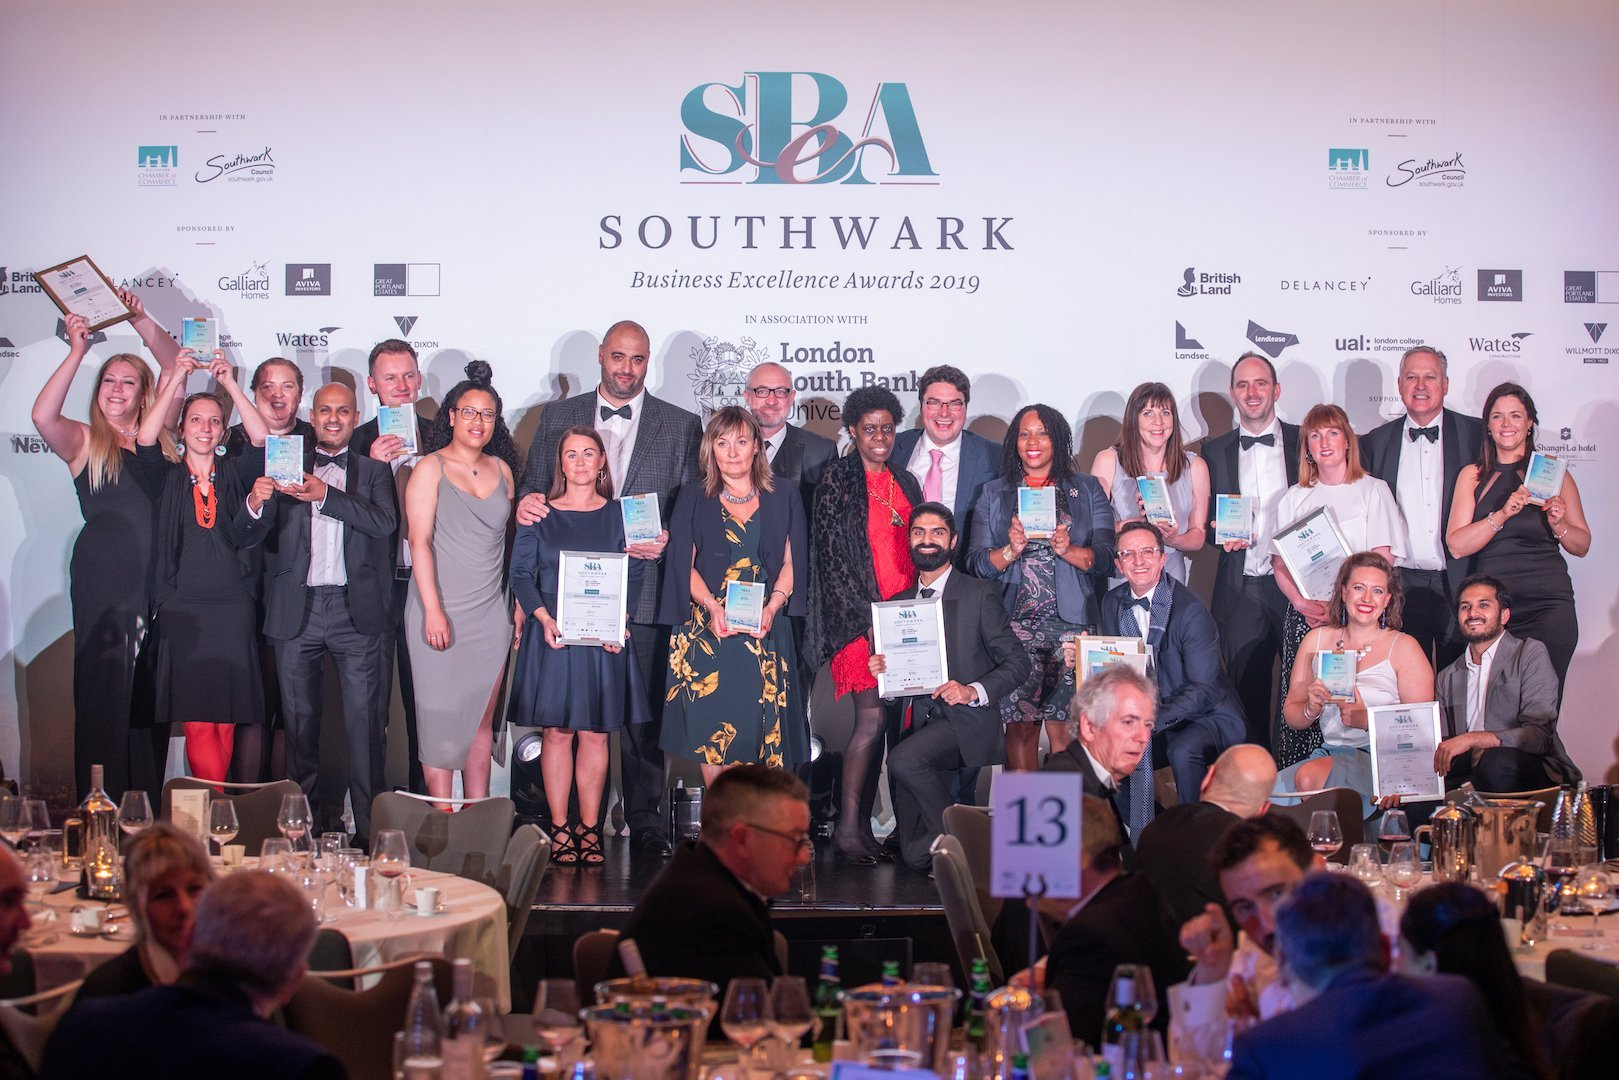 Southwark Business Excellence Awards 2019 Winners